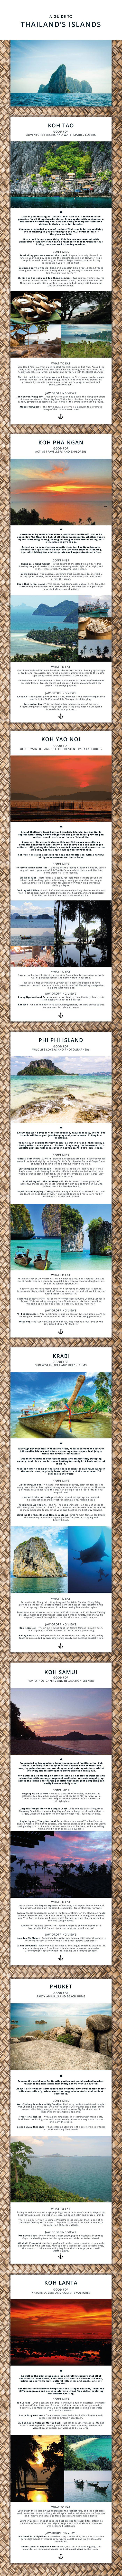 Thailand's Islands Graphic Guide